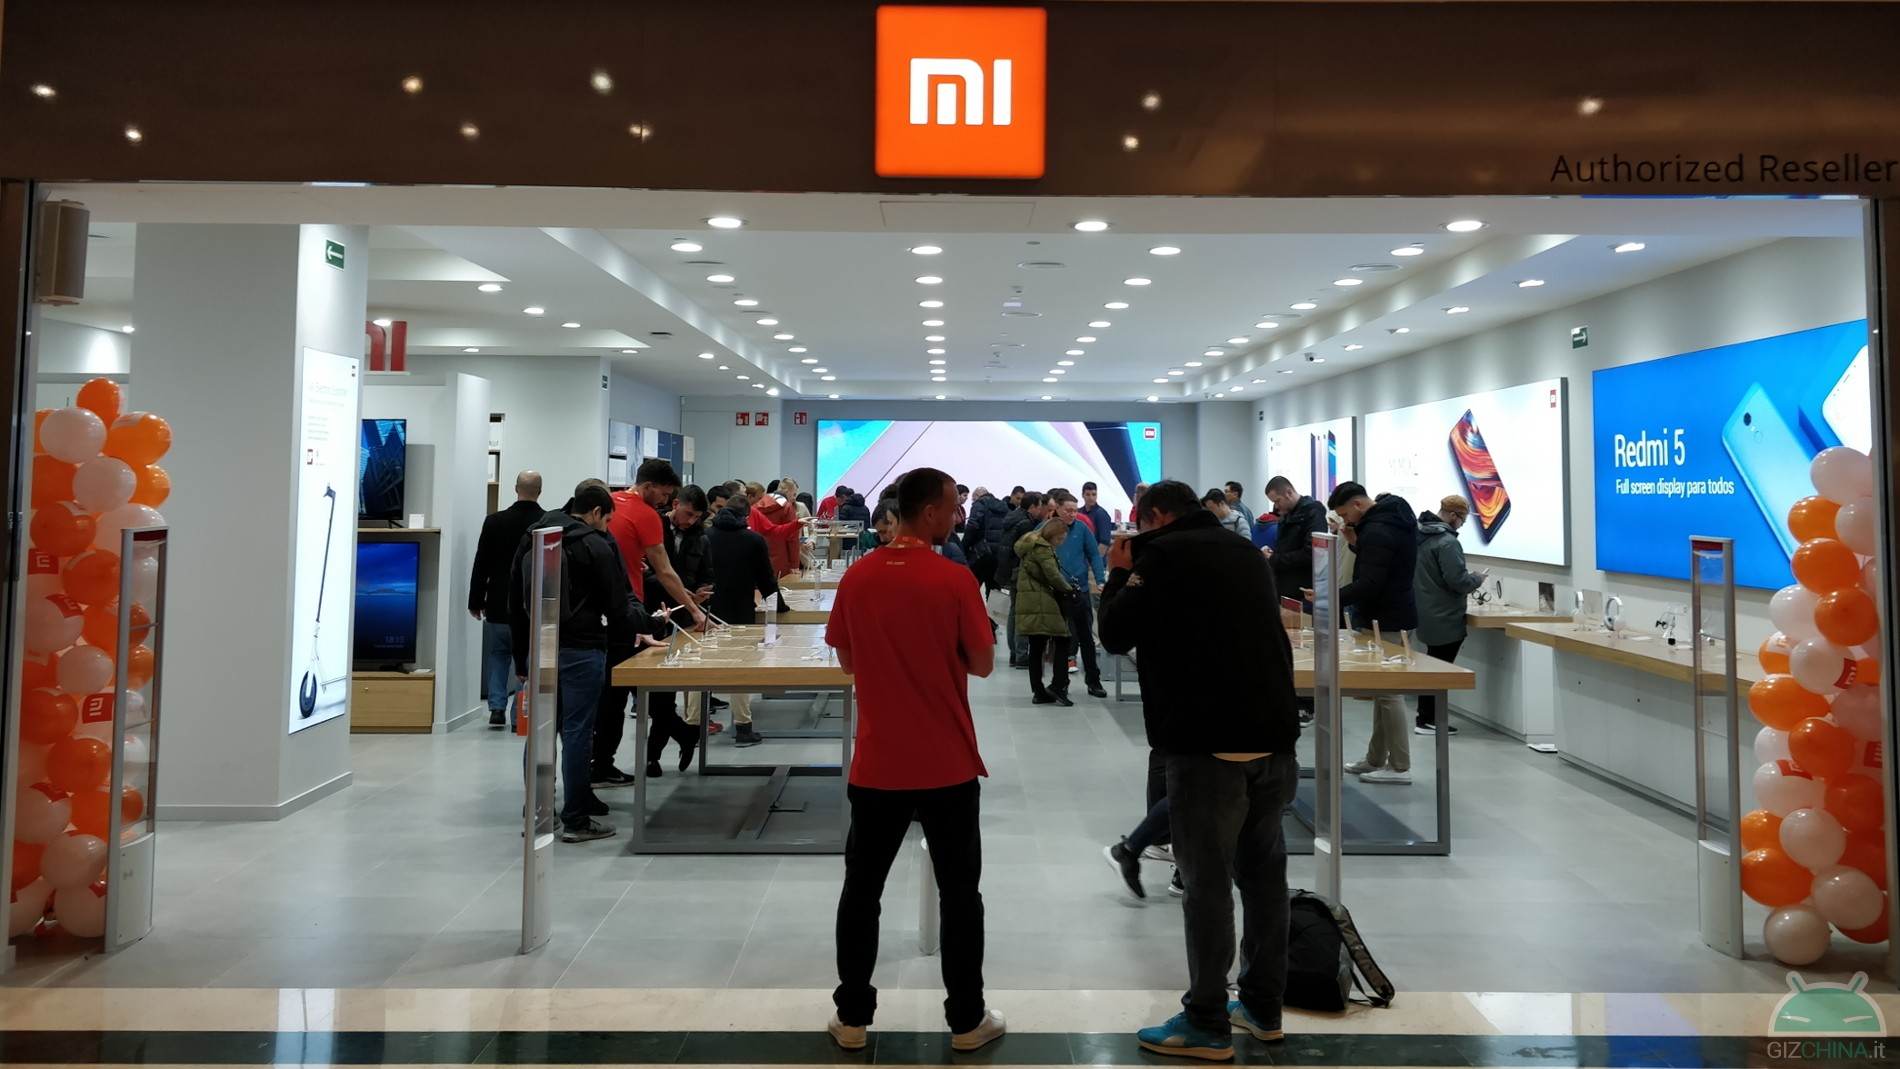 How To Get Mi Store Franchise In India - Xiaomi Mi Store Franchise Application